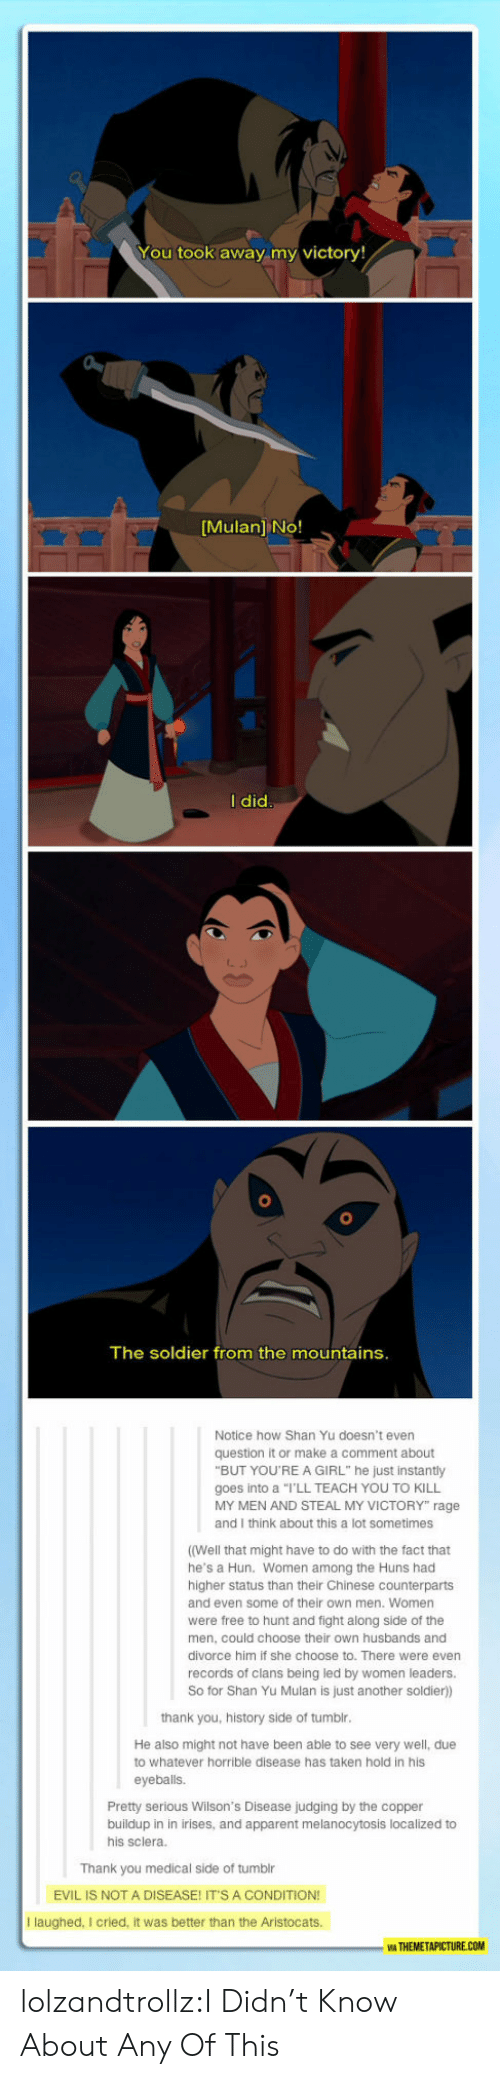 "themetapicture: You took away my victory!  [Mulan] No!  I did  The soldier from the mountains.  Notice how Shan Yu doesn't even  question it or make a comment about  ""BUT YOU'REA GIRL"" he just instantly  goes into a ""I'LL TEACH YOU TO KILL  MY MEN AND STEAL MY VICTORY"" rage  and I think about this a lot sometimes  ((Well that might have to do with the fact that  he's a Hun. Women among the Huns had  higher status than their Chinese counterparts  and even some of their own men. Women  were free to hunt and fight along side of the  men, could choose their own husbands and  divorce him if she choose to. There were even  records of clans being led by women leaders.  So for Shan Yu Mulan is just another soldier))  thank you, history side of tumblr.  He also might not have been able to see very well, due  to whatever horrible disease has taken hold in his  eyeballs.  Pretty serious Wilson's Disease judging by the copper  buildup in in irises, and apparent melanocytosis localized to  his sclera.  Thank you medical side of tumblr  EVIL IS NOT A DISEASE! IT'S A CONDITION!  I laughed, I cried, it was better than the Aristocats.  WA THEMETAPICTURE.COM lolzandtrollz:I Didn't Know About Any Of This"